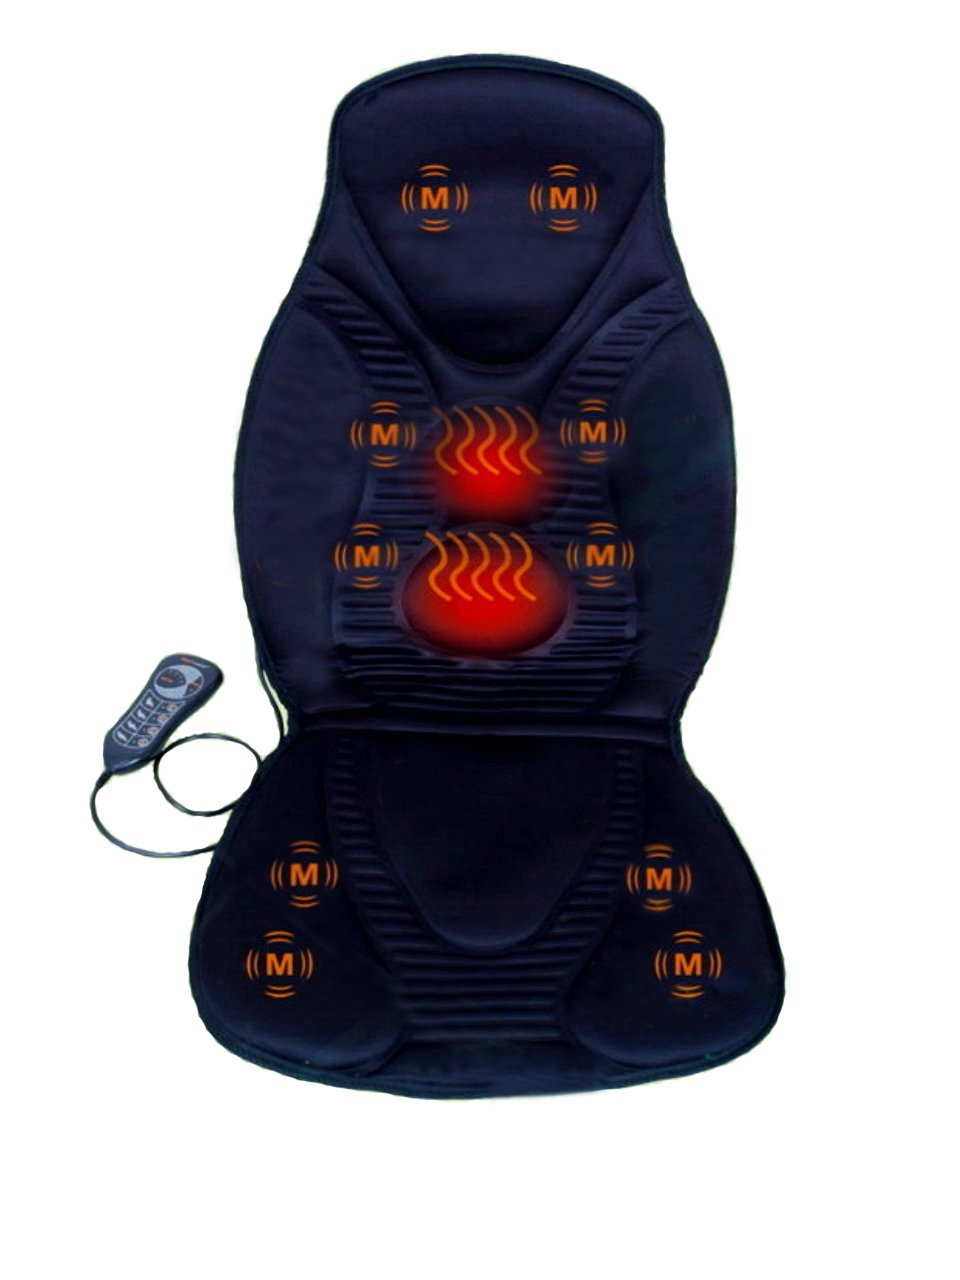 Five Star Five S Ten Heated Massage Cushion